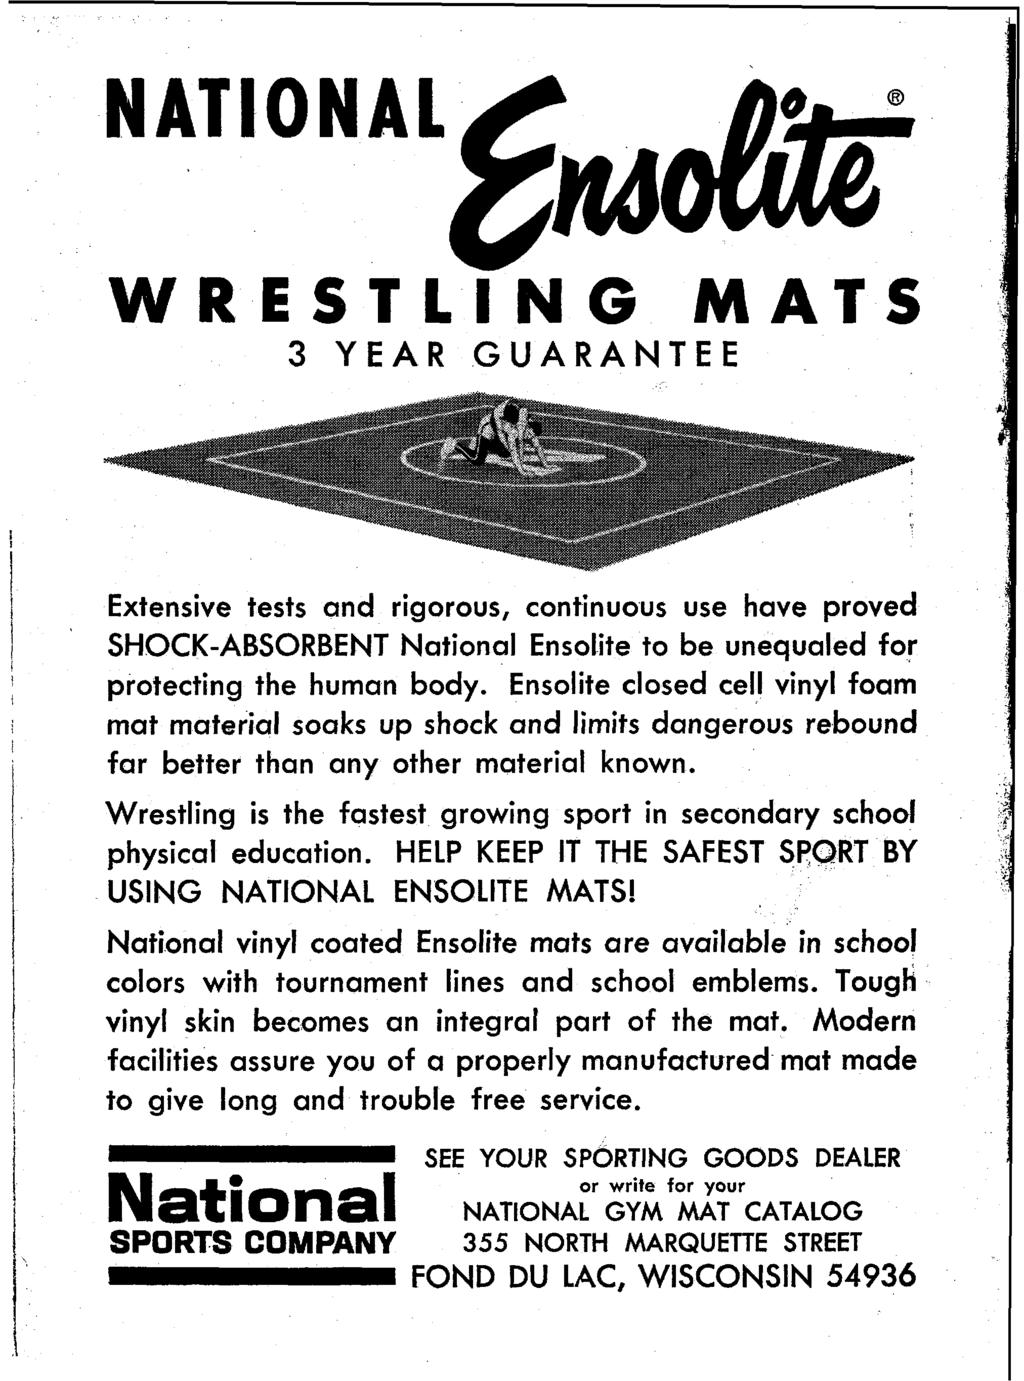 WRESTLING MATS 3 YEAR GUARANTEE Extensive tests and rigorous, continuous use have proved SHOCK-ABSORBENT National Ensolite to be unequaled for protecting the human body.